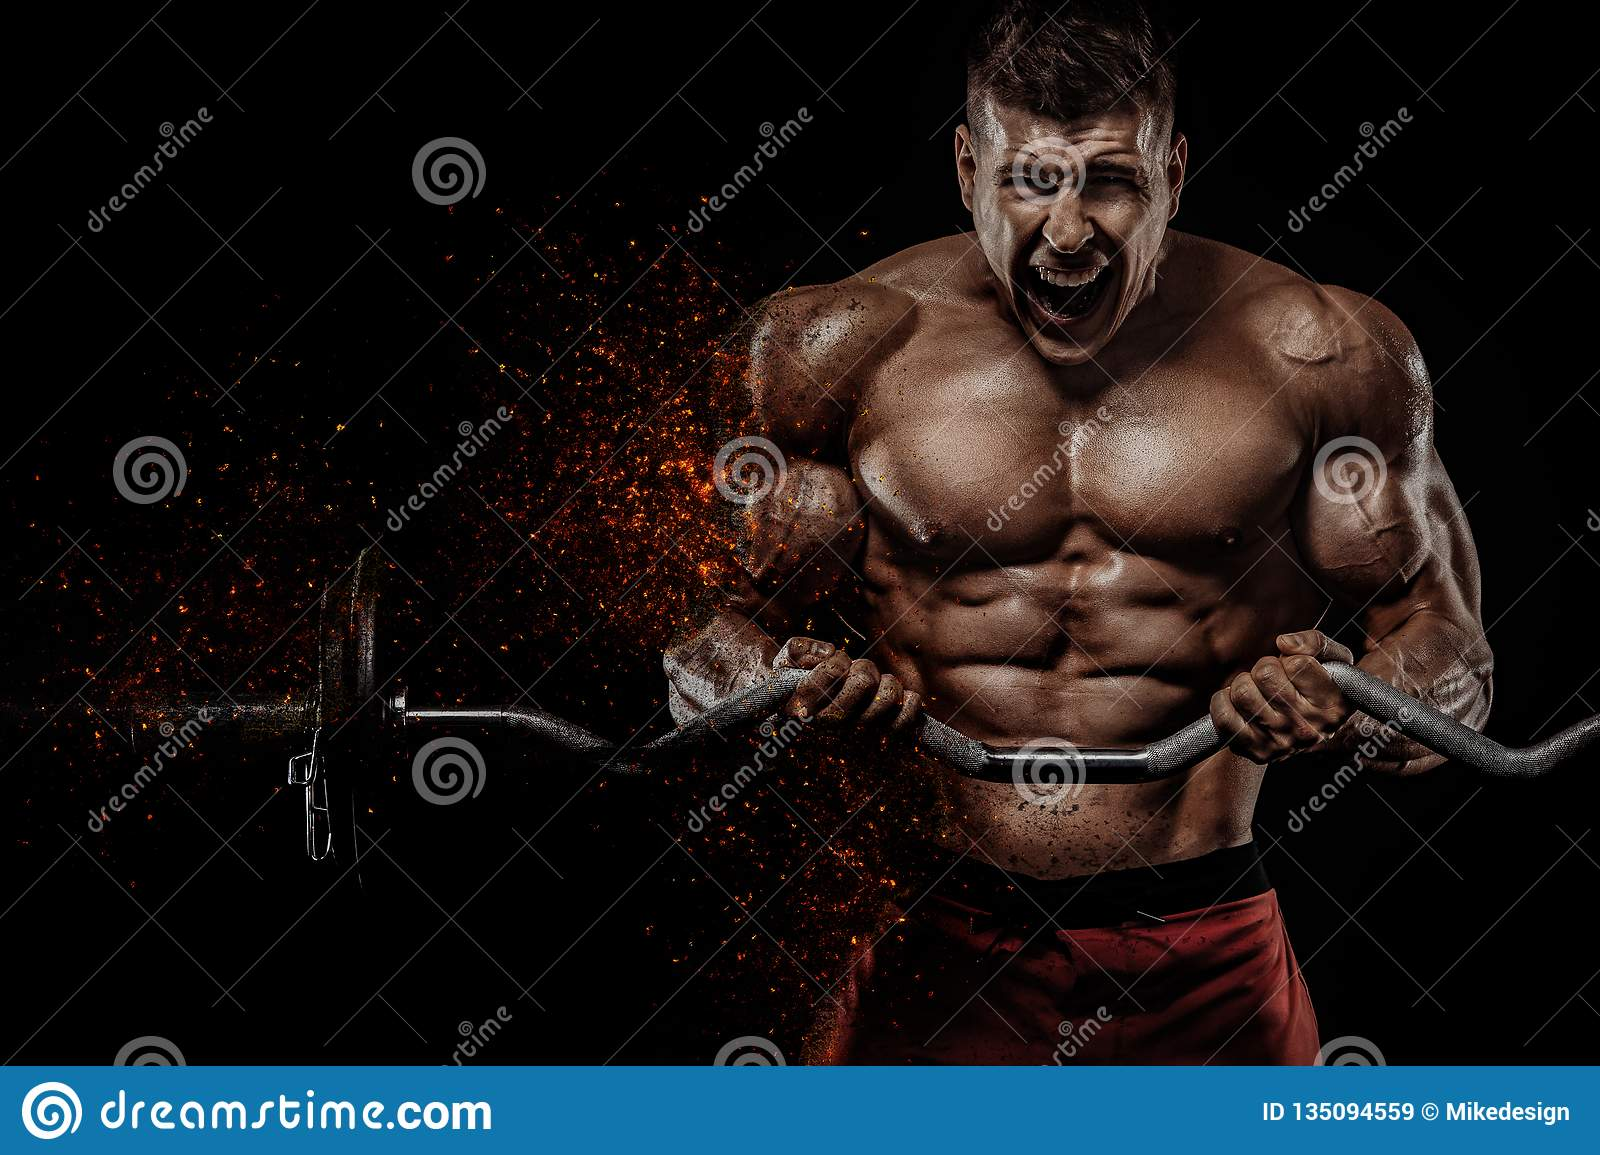 Brutal strong muscular bodybuilder athletic man pumping up muscles with barbell on black background. Workout